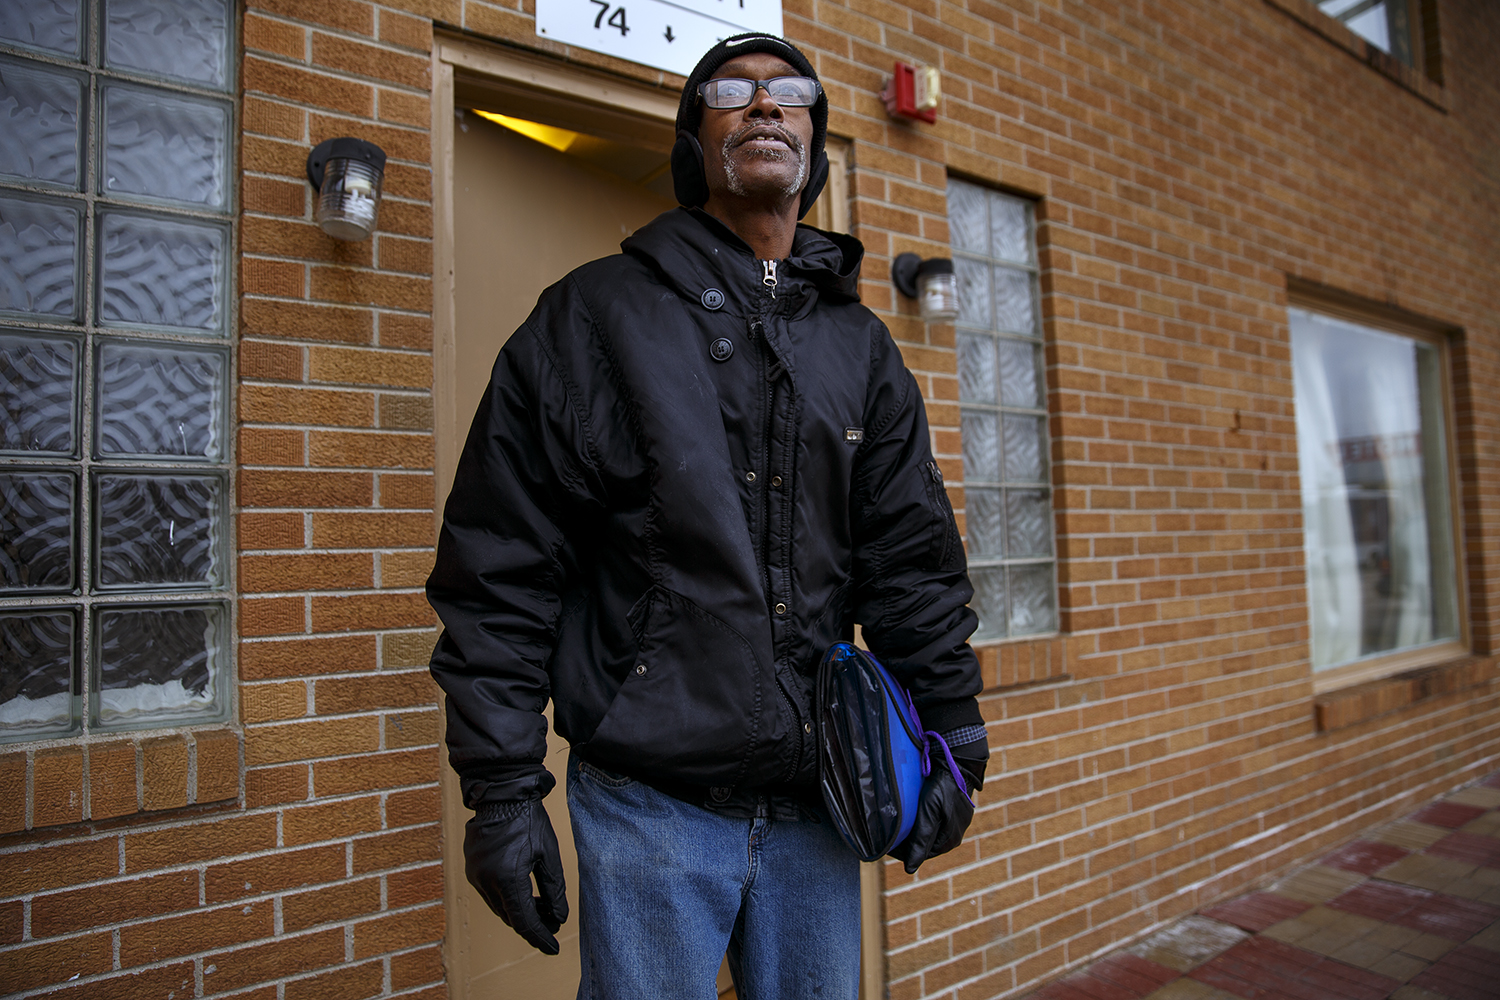 Robert Ringo has lived on and off at the motel for the past eight years.